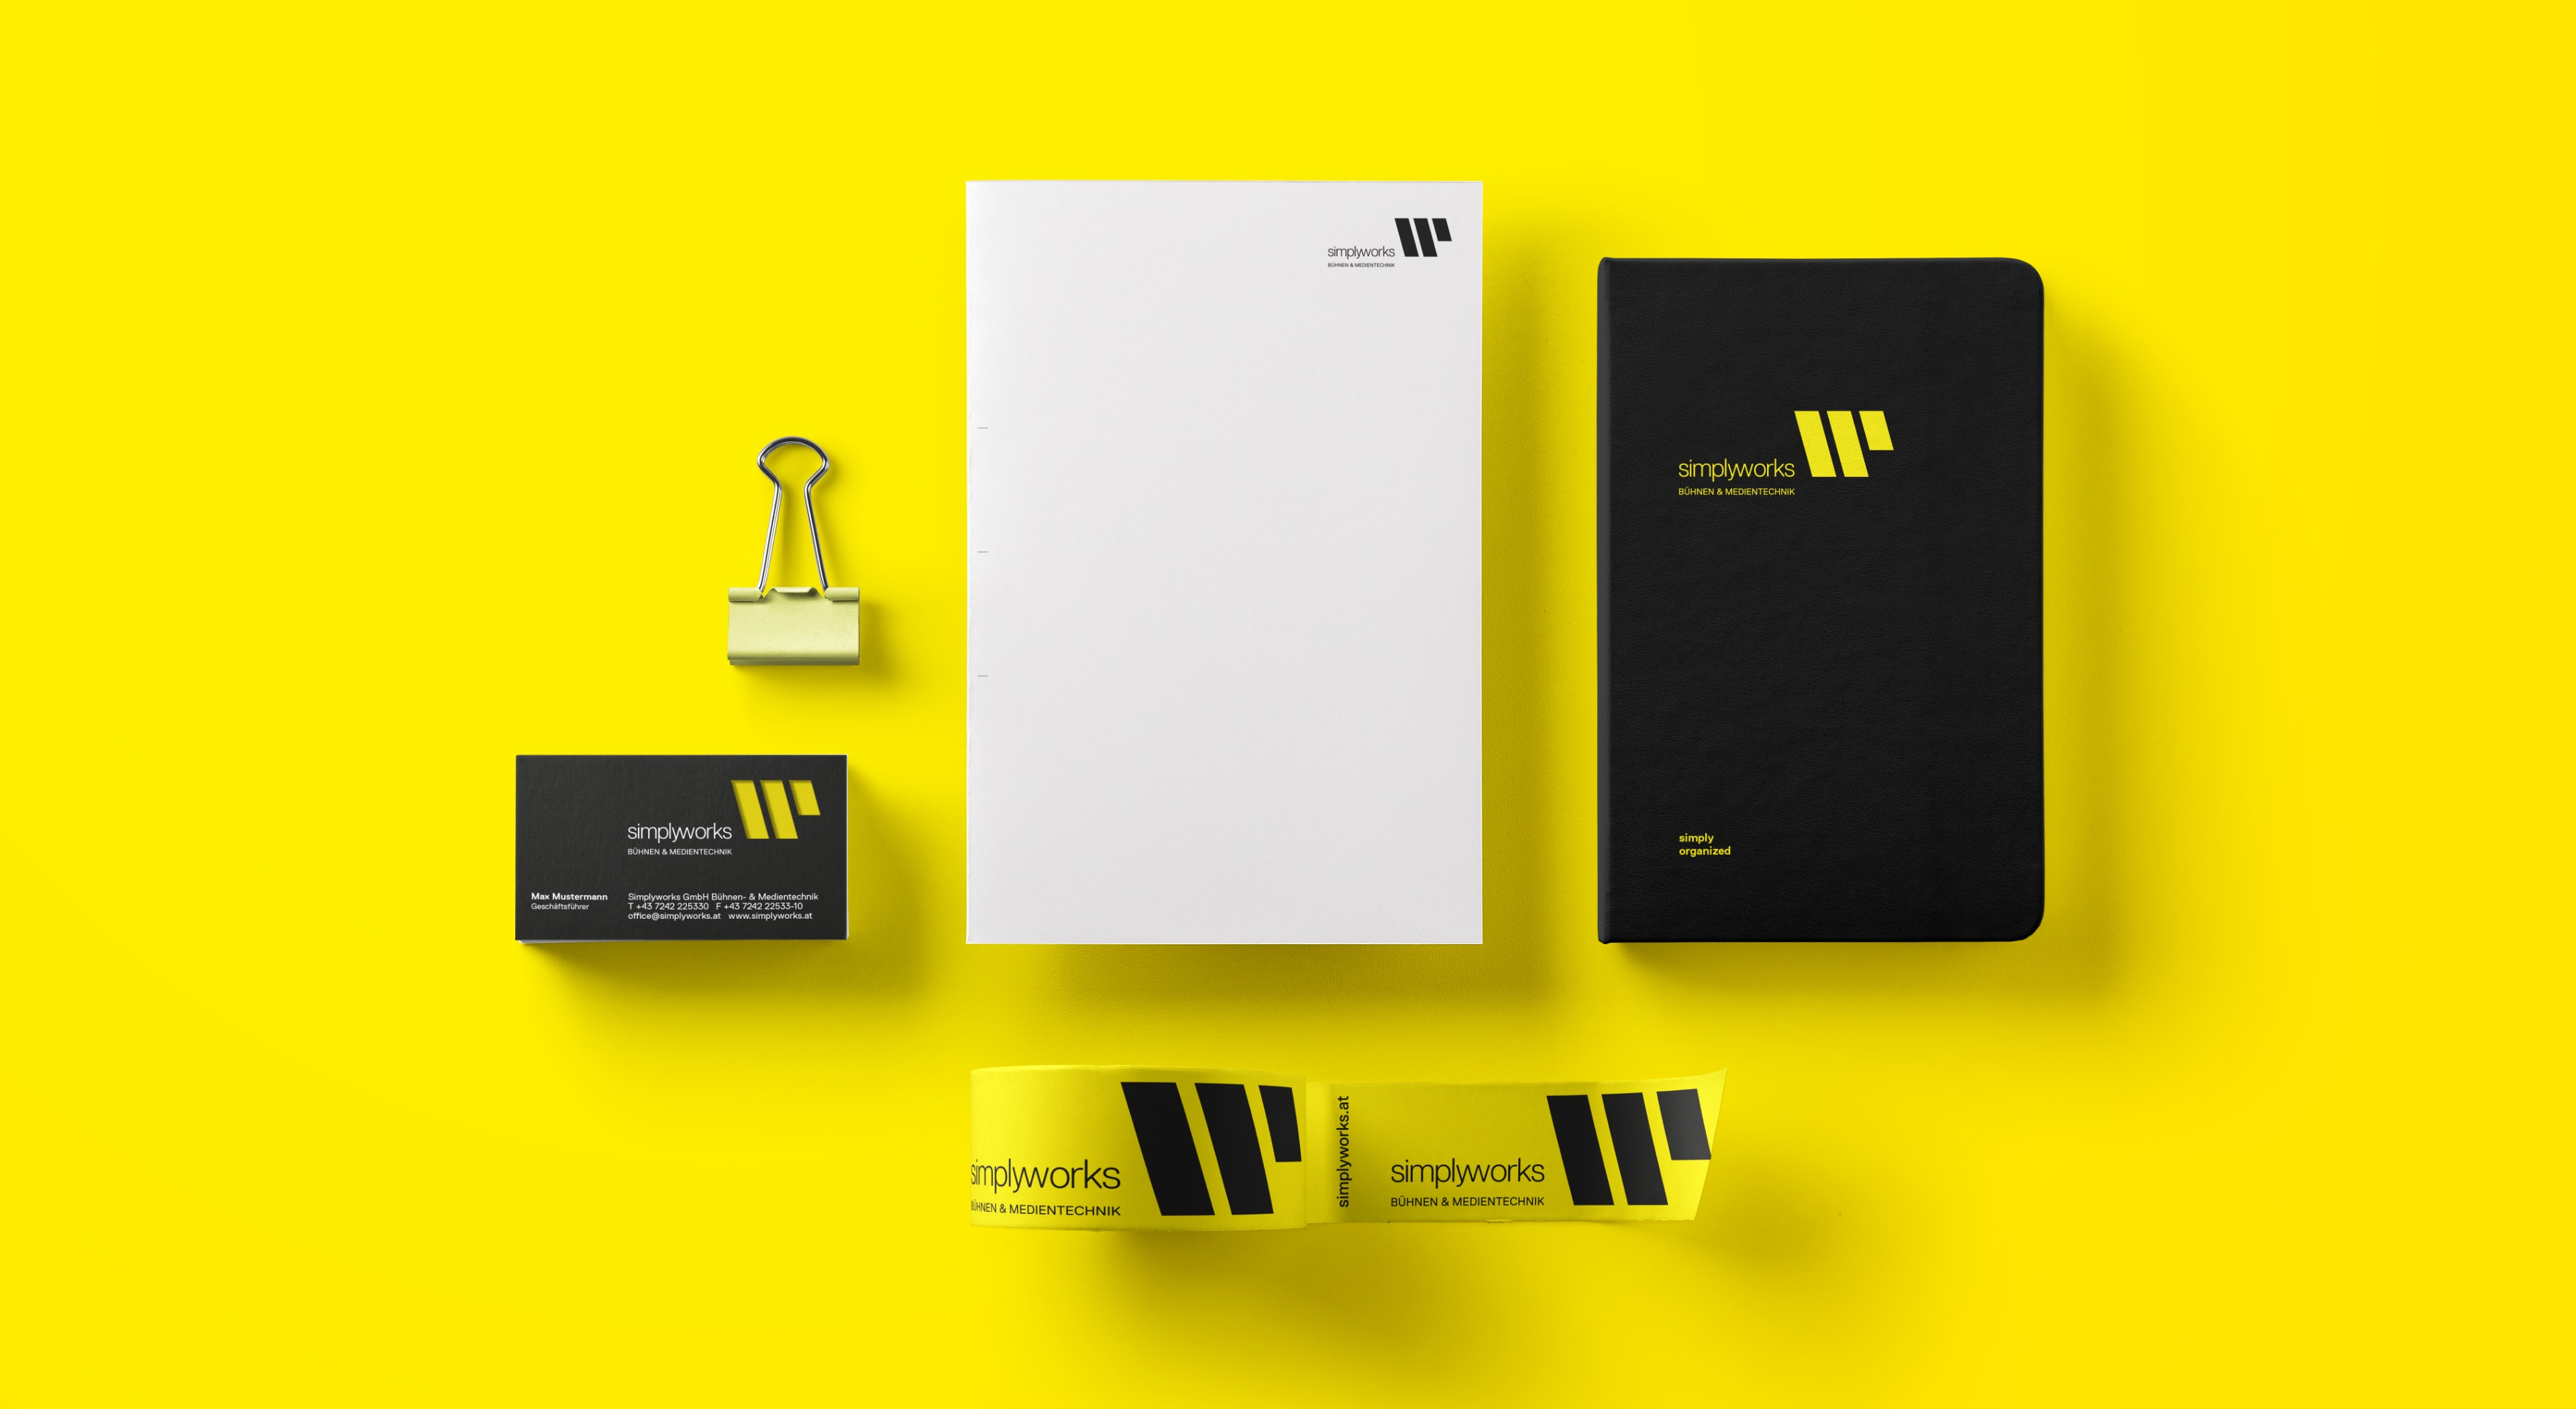 Q2 Werbeagentur, Simply-works, Corporate Design